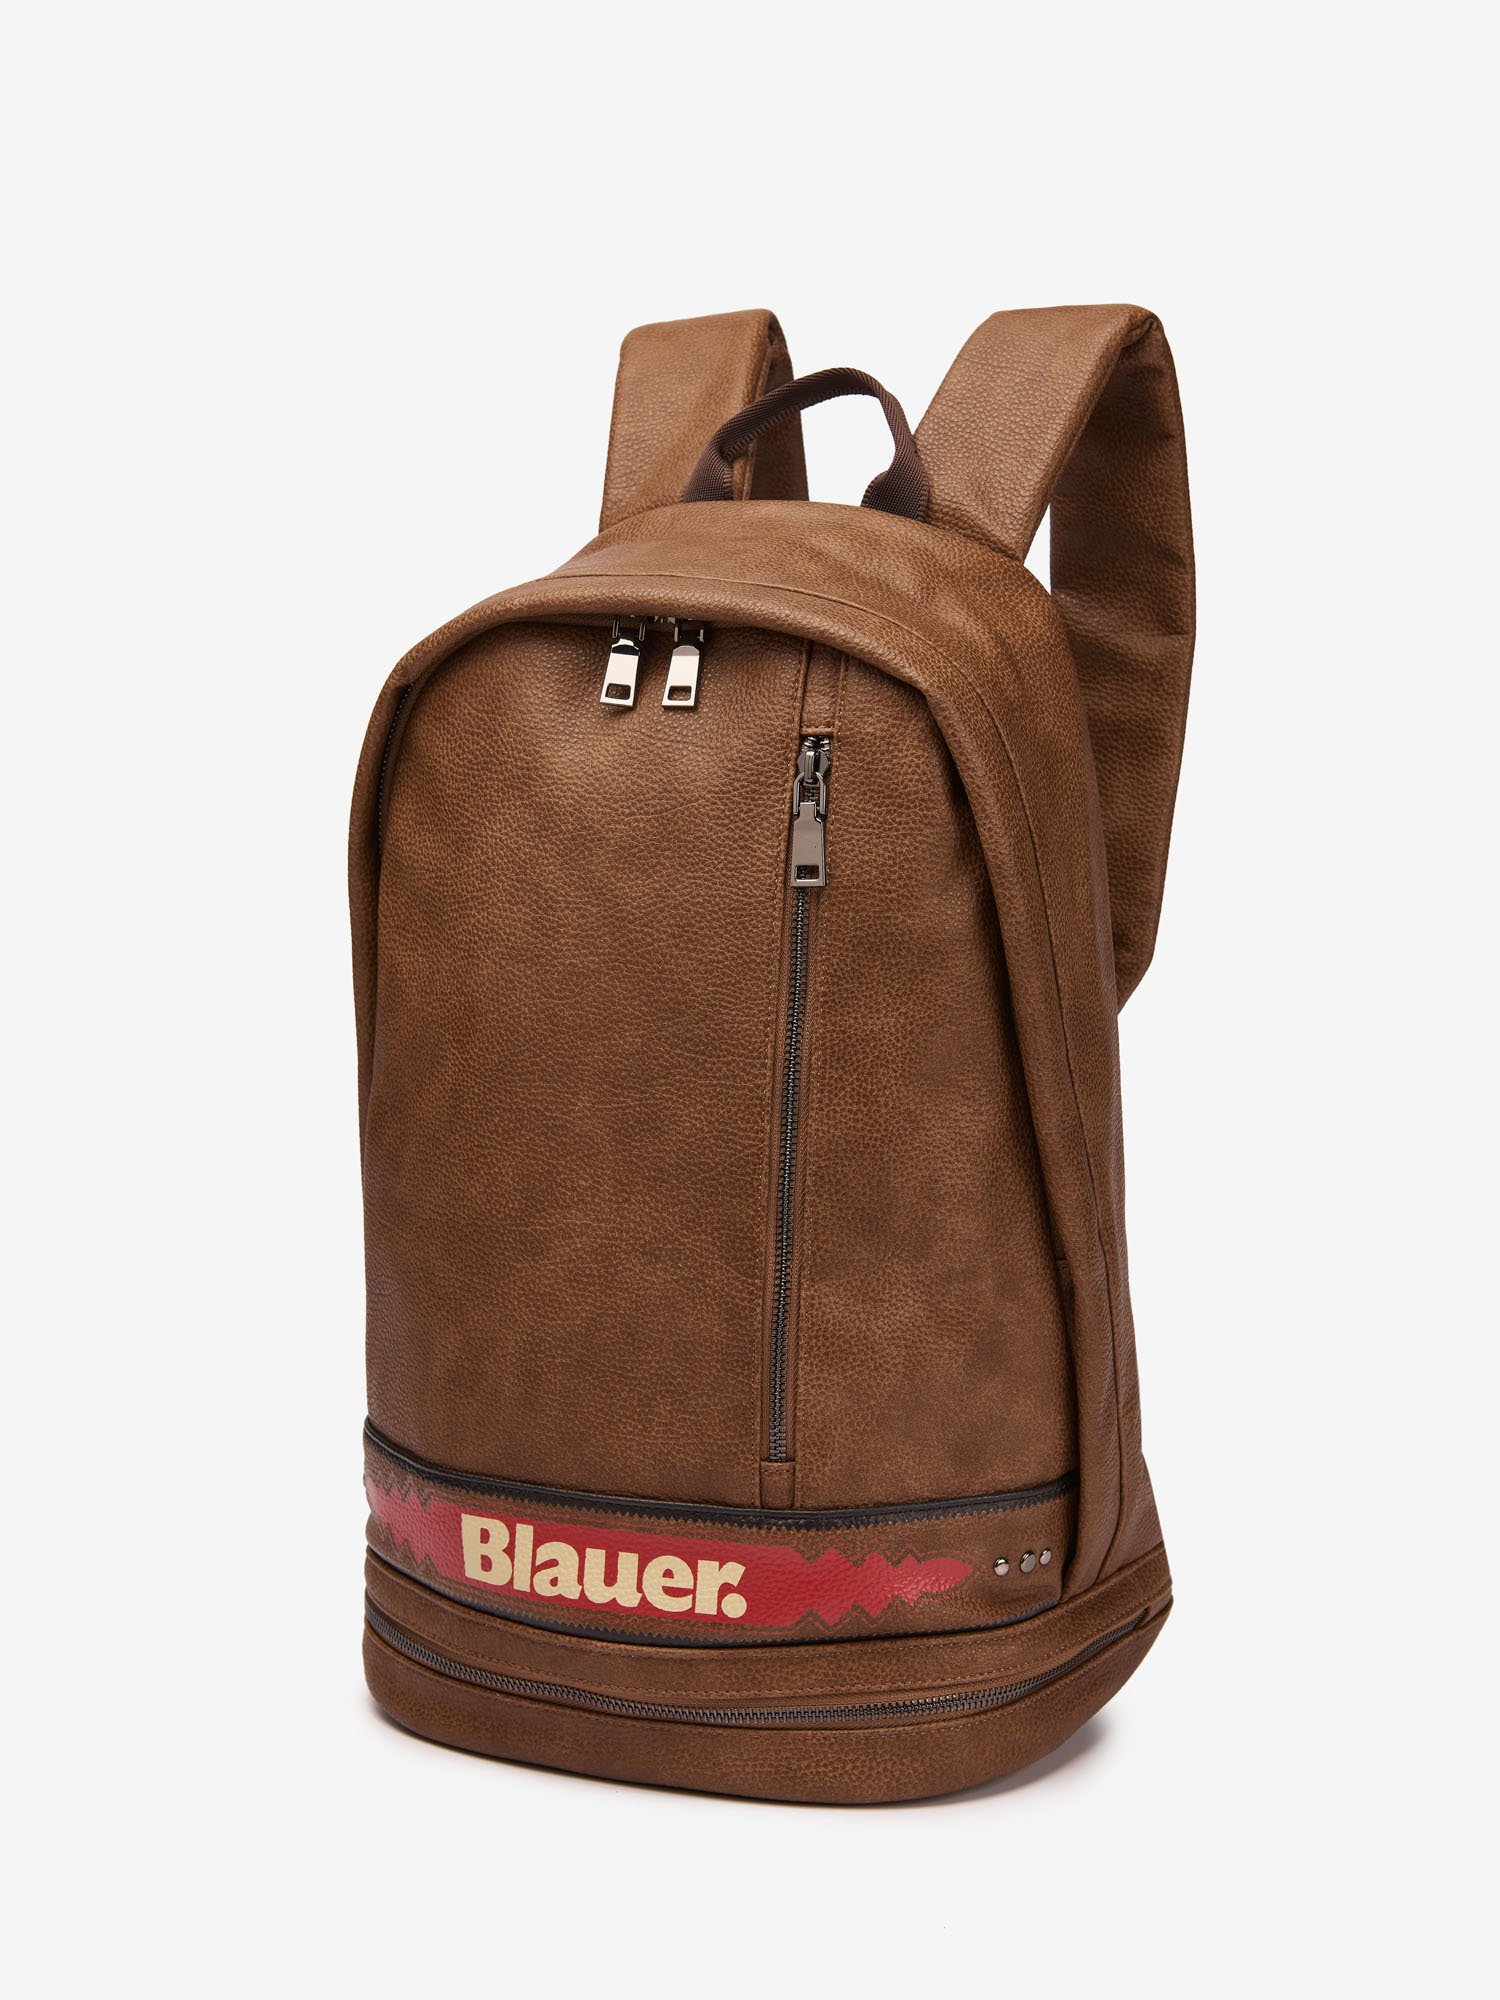 MULTI POCKET BACKPACK - Blauer